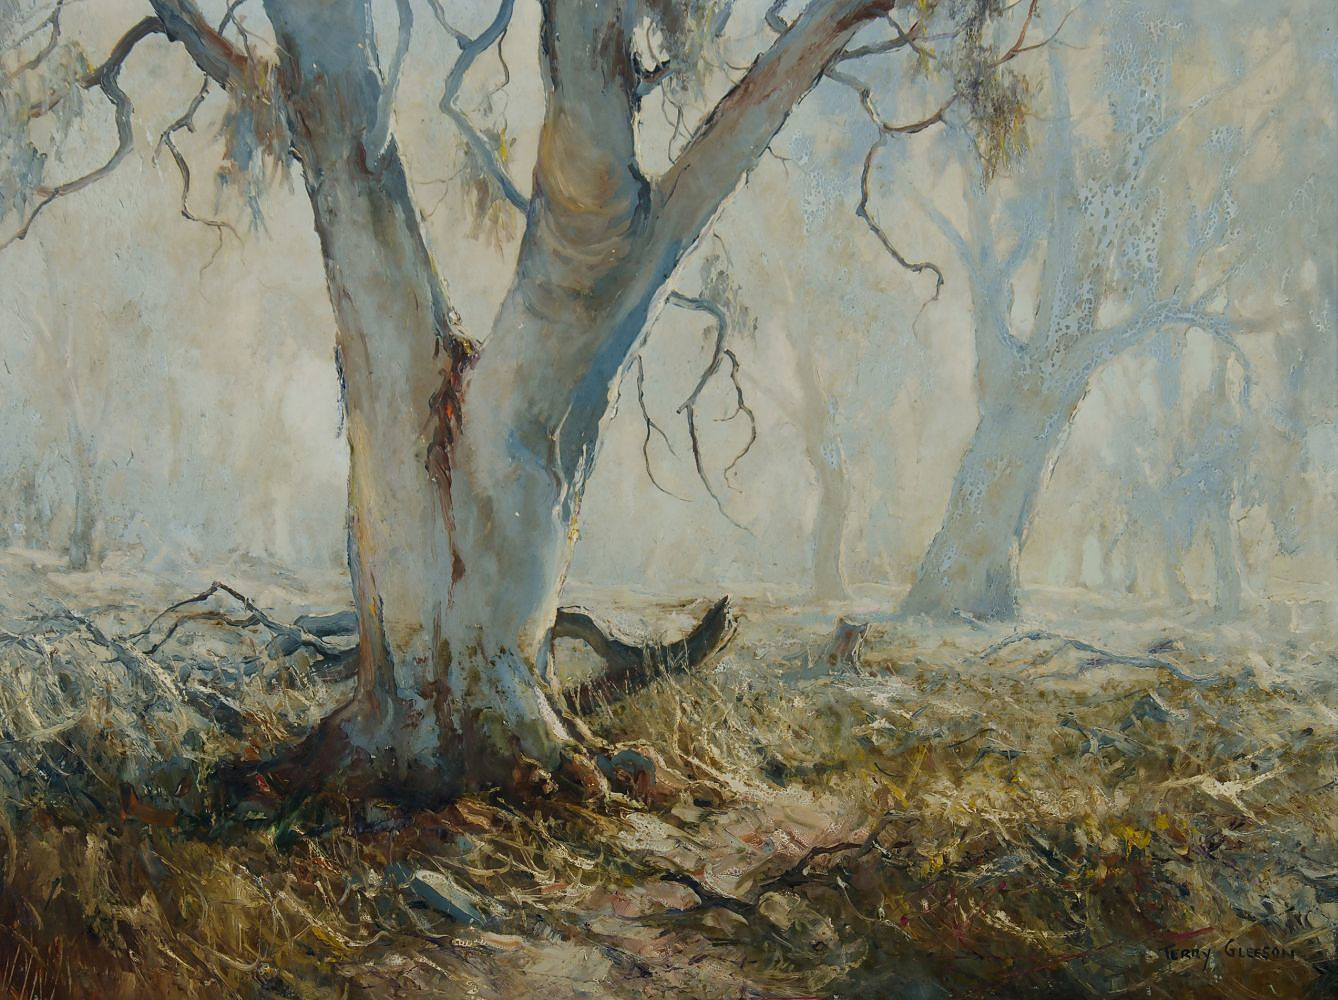 'GLEESON, Terry (1934-1976) Bush Landscape with Gums Oil on Board'